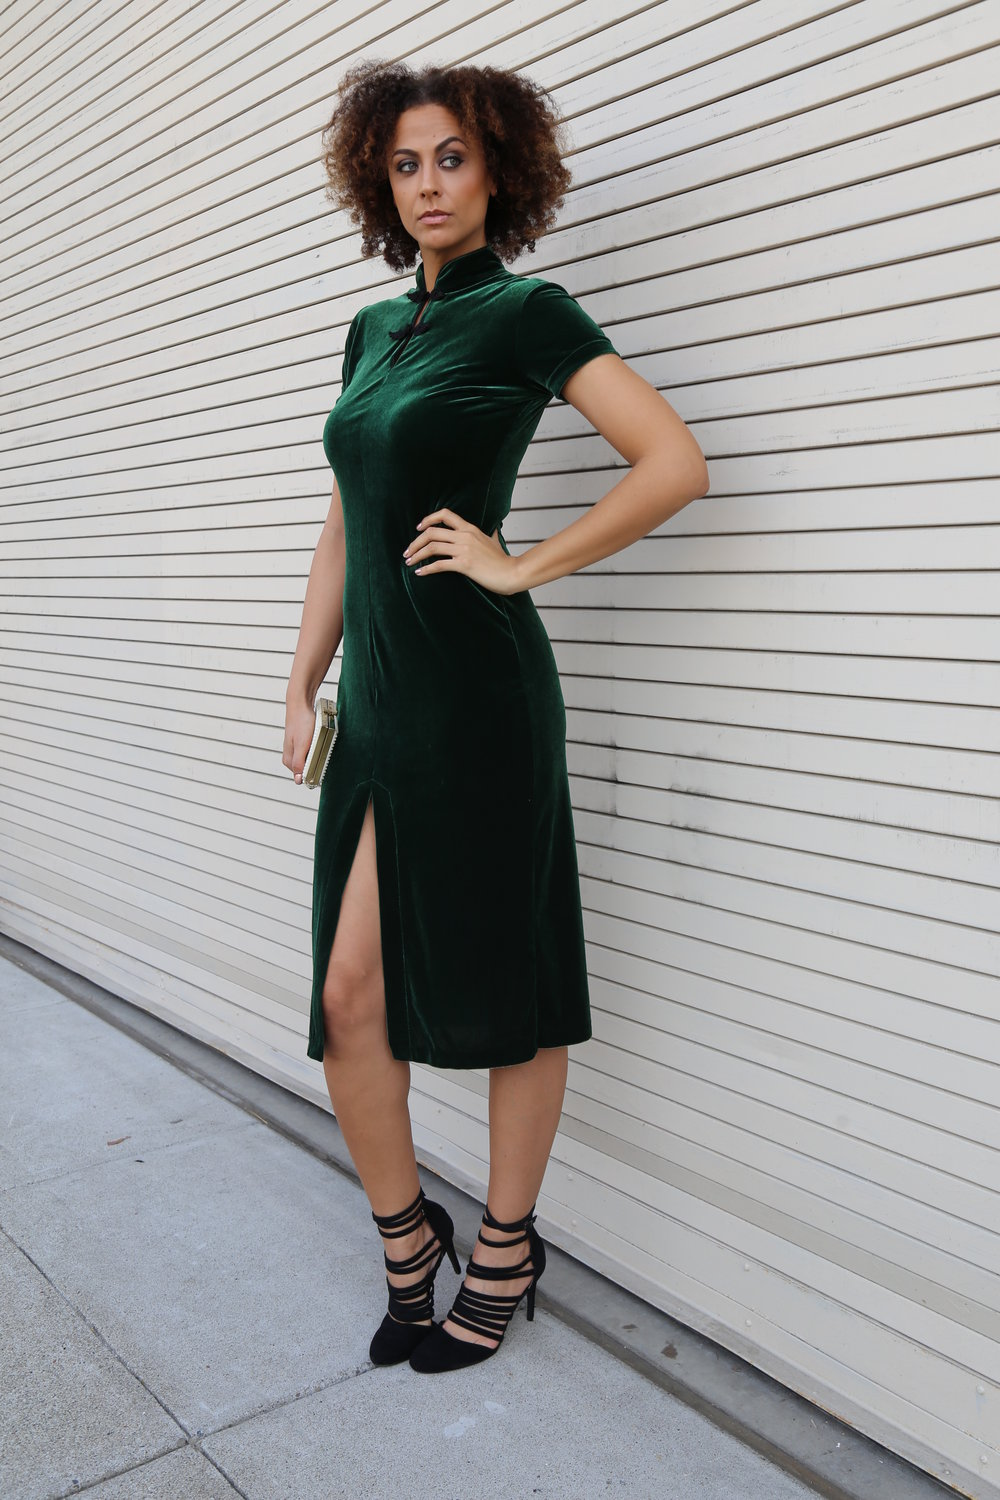 Velvet dress - Retro.Honey/LTS Emilia Strappy Heel (shown in size 12) - Long Tall Sally/Pearl Clutch - Thrifted Photo Credit: LaKeela Smith Photography